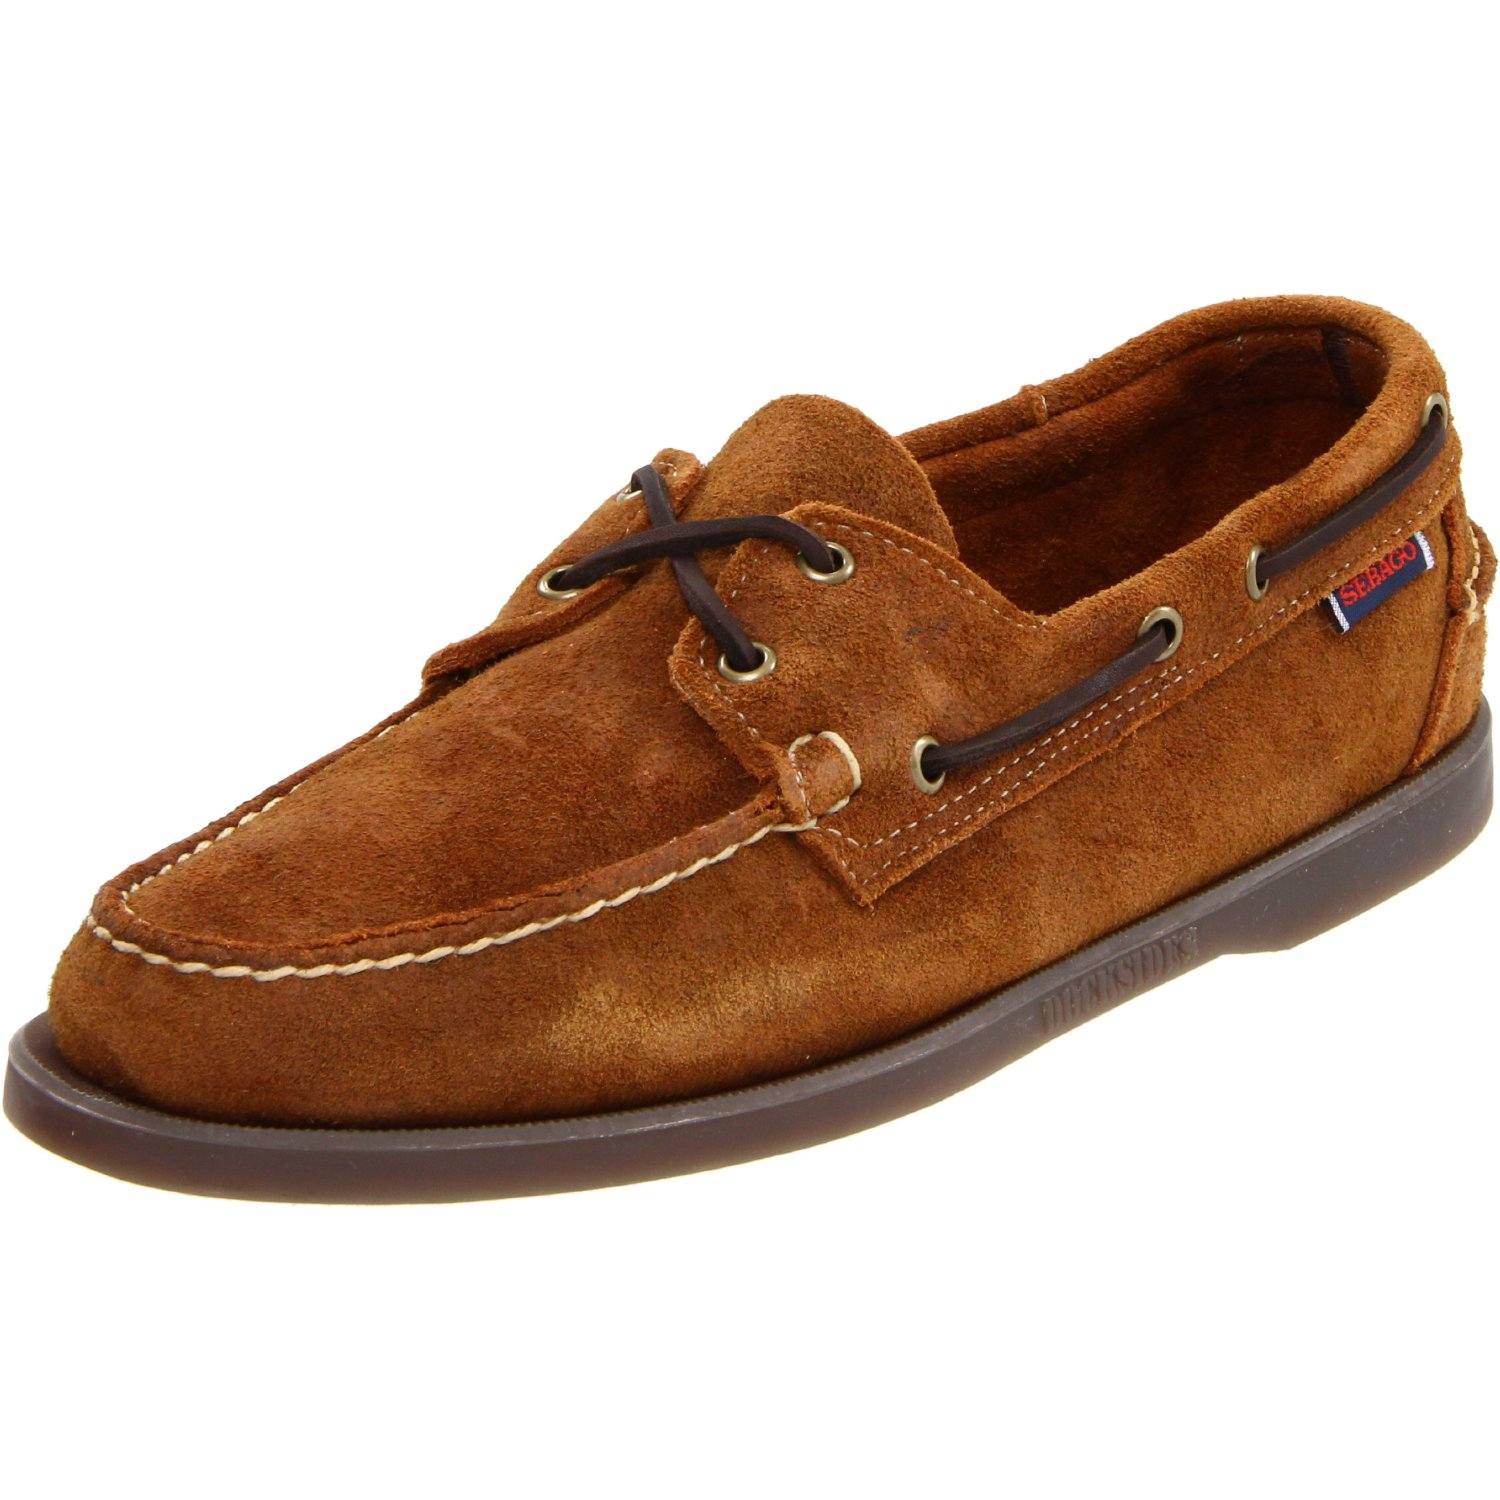 Mens Boat Shoes Style Guide